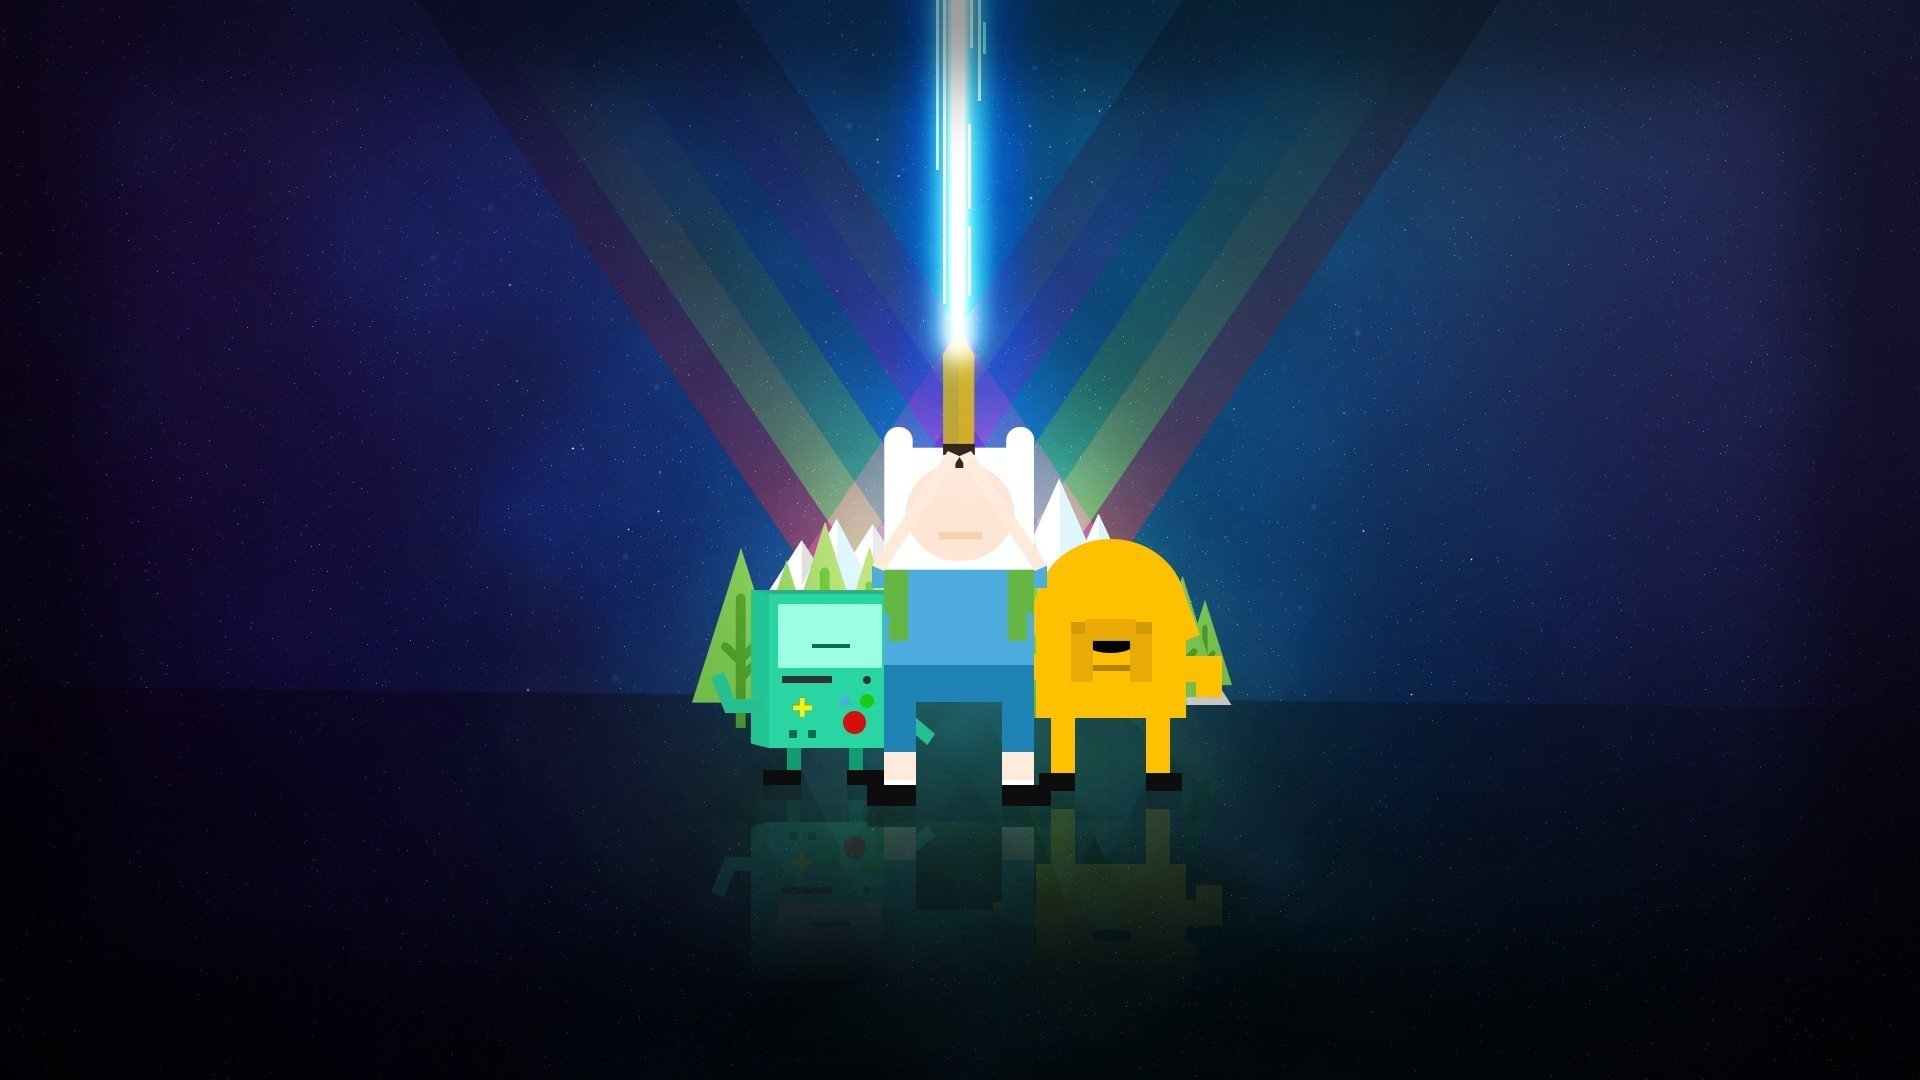 1920x1080 #Jake the Dog, #Adventure Time, #Finn the Human, #BMO, wallpaper